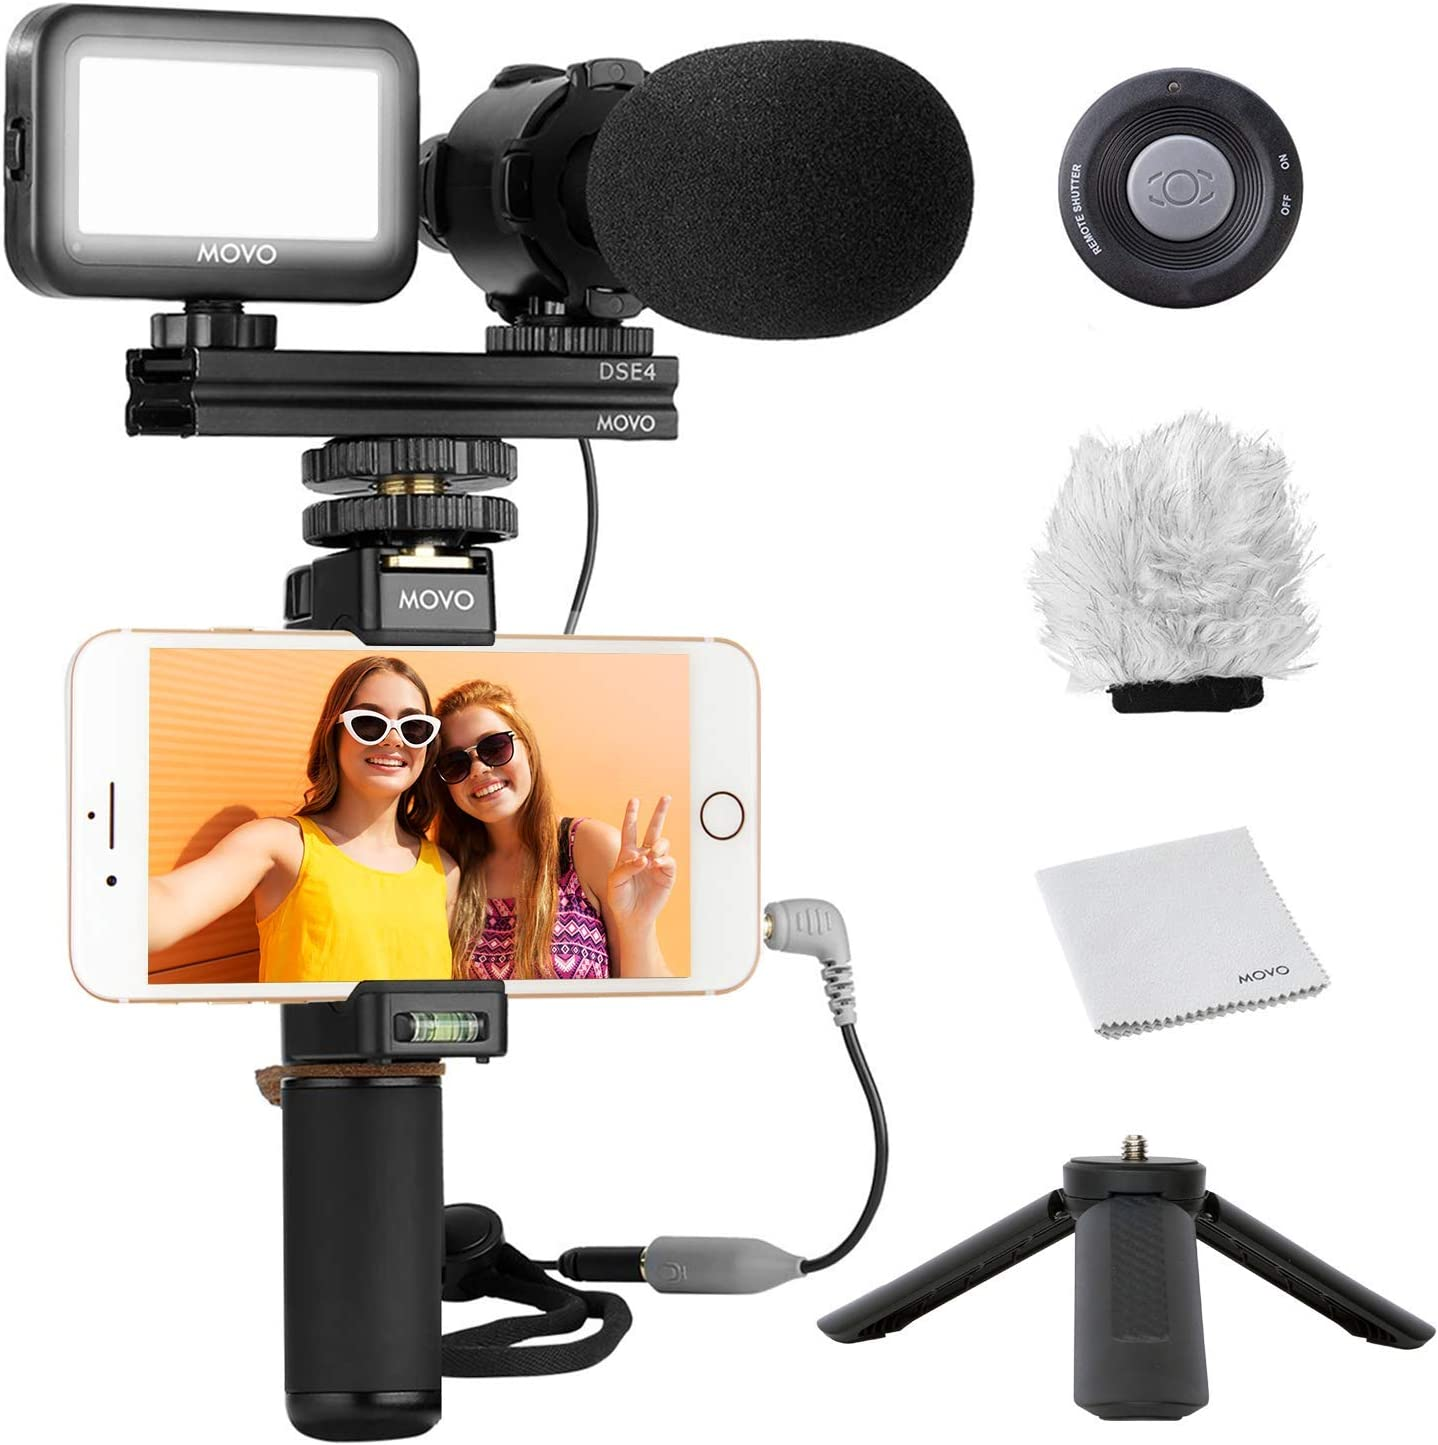 Movo Smartphone Video Kit V7 Max 67% OFF Rig Grip Tripod Industry No. 1 Vlogging with